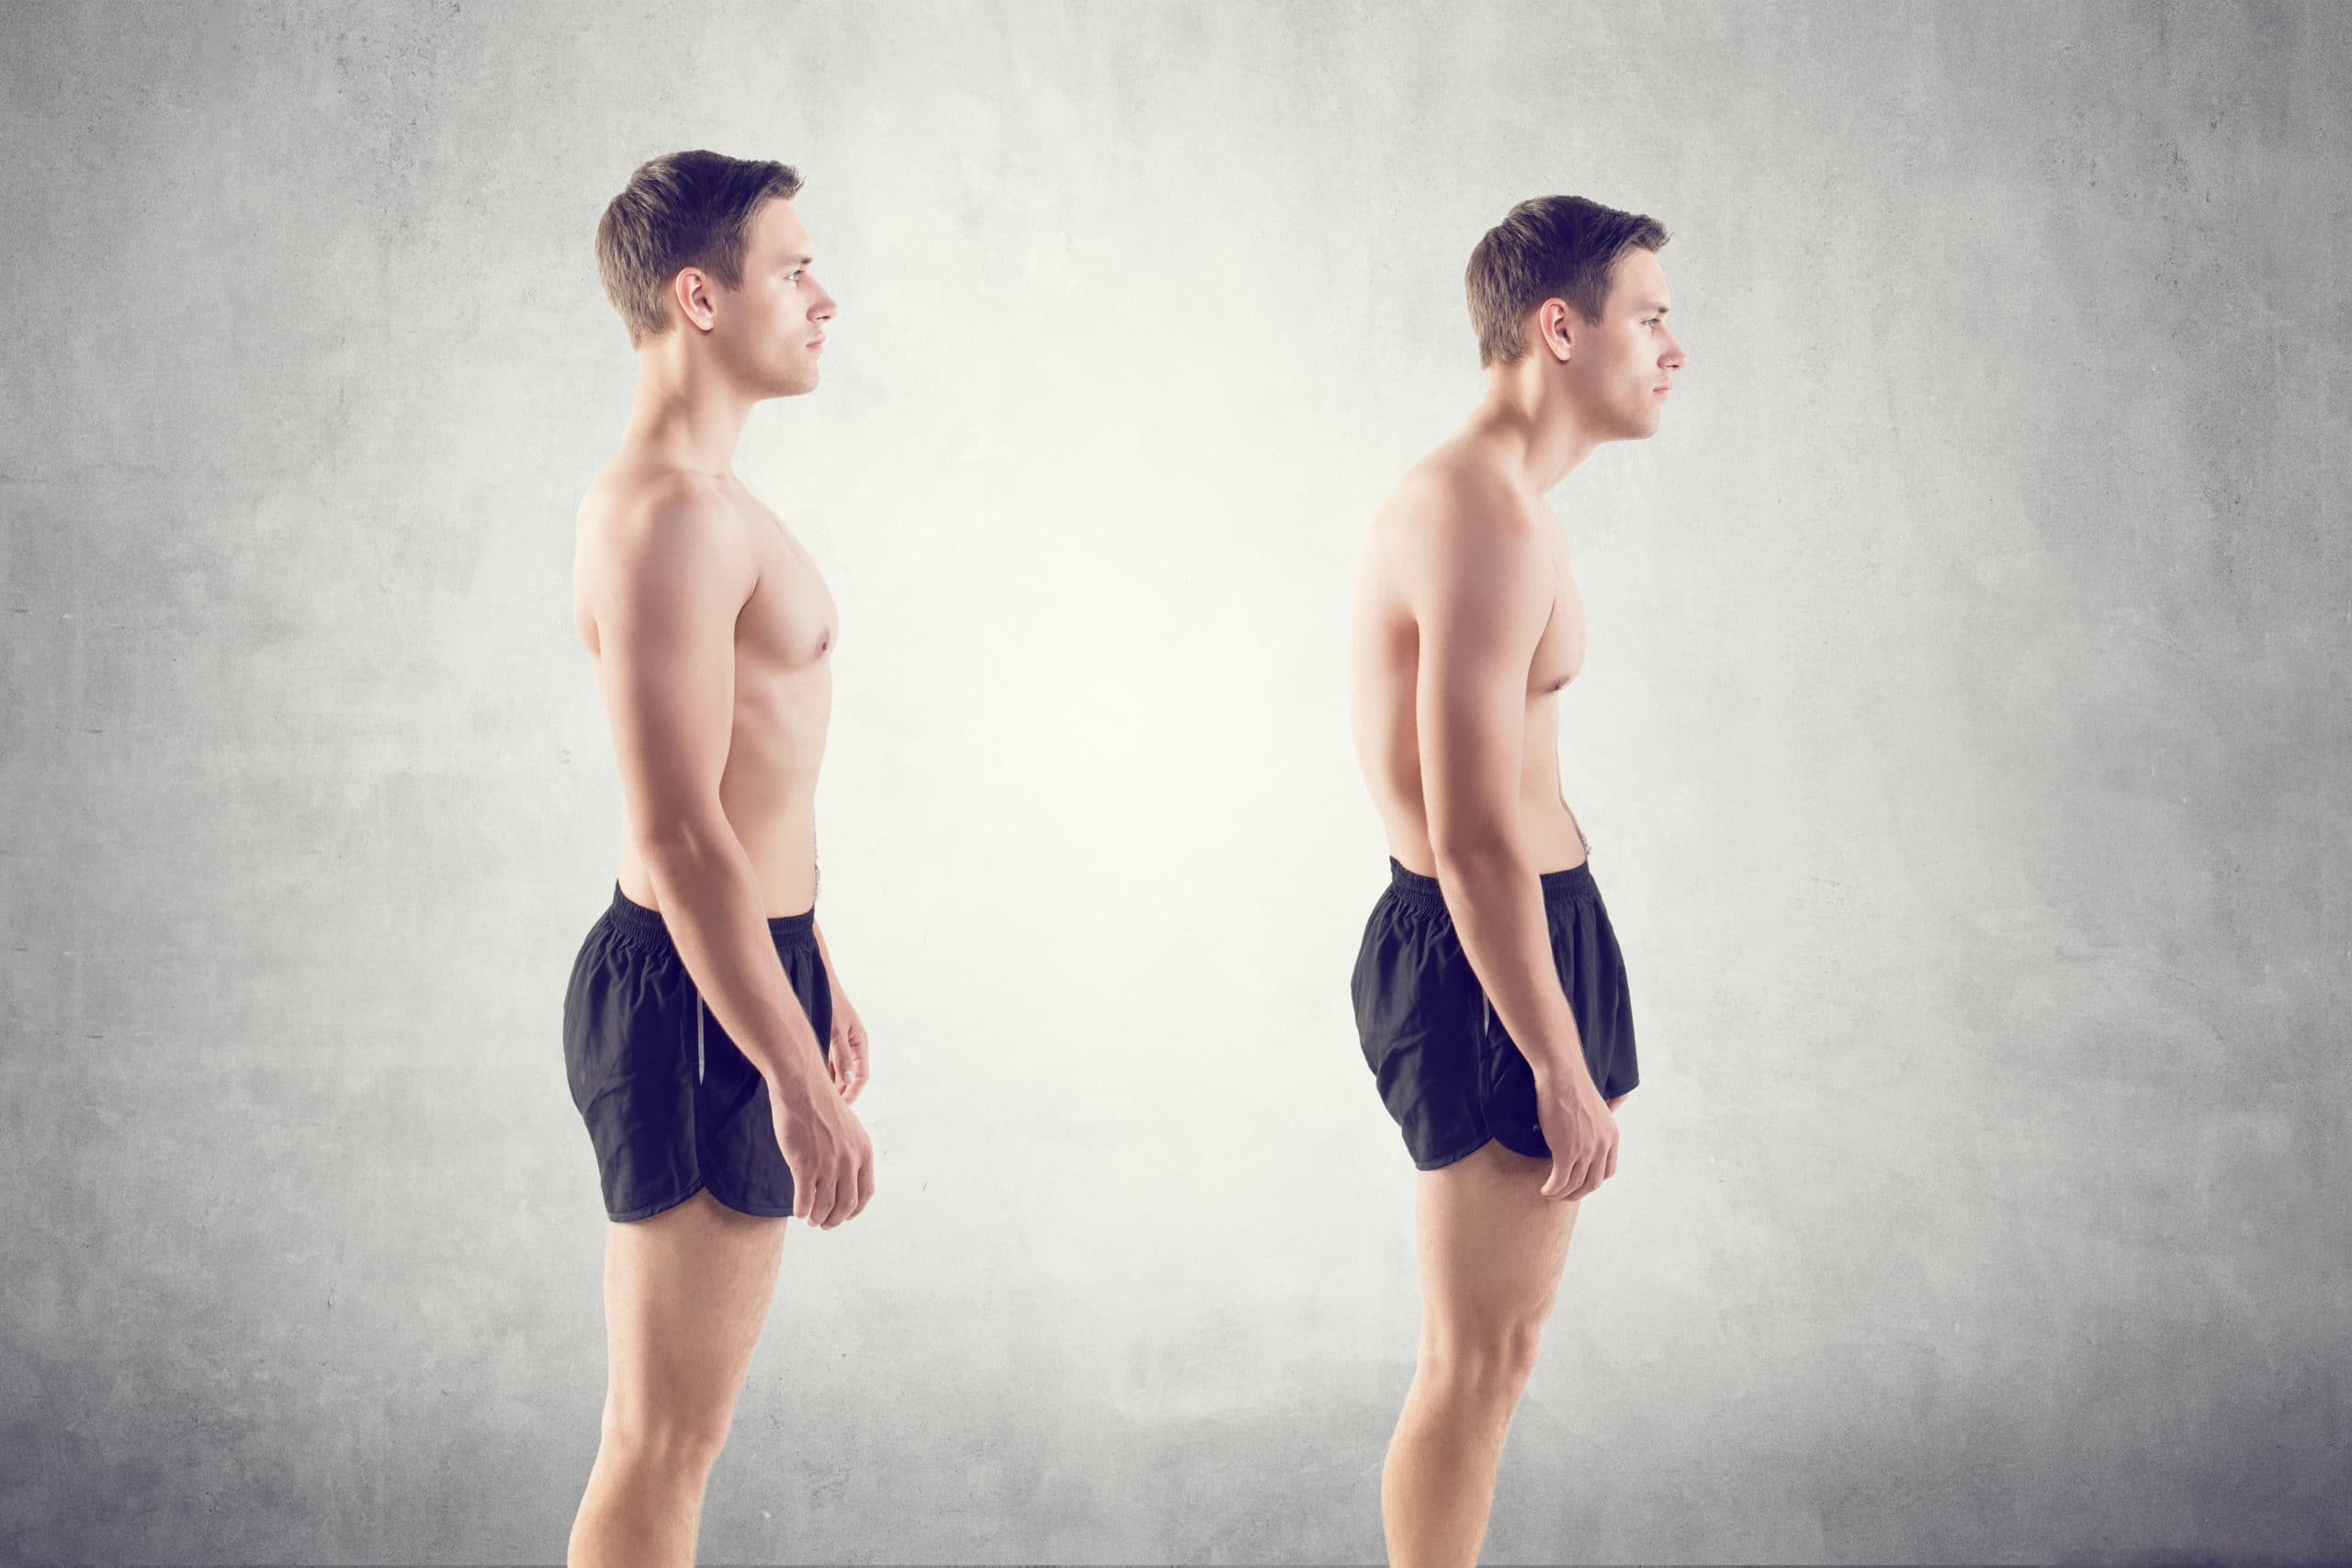 Man with impairMan with impaired posture position defect scoliosis and ideal bearing.